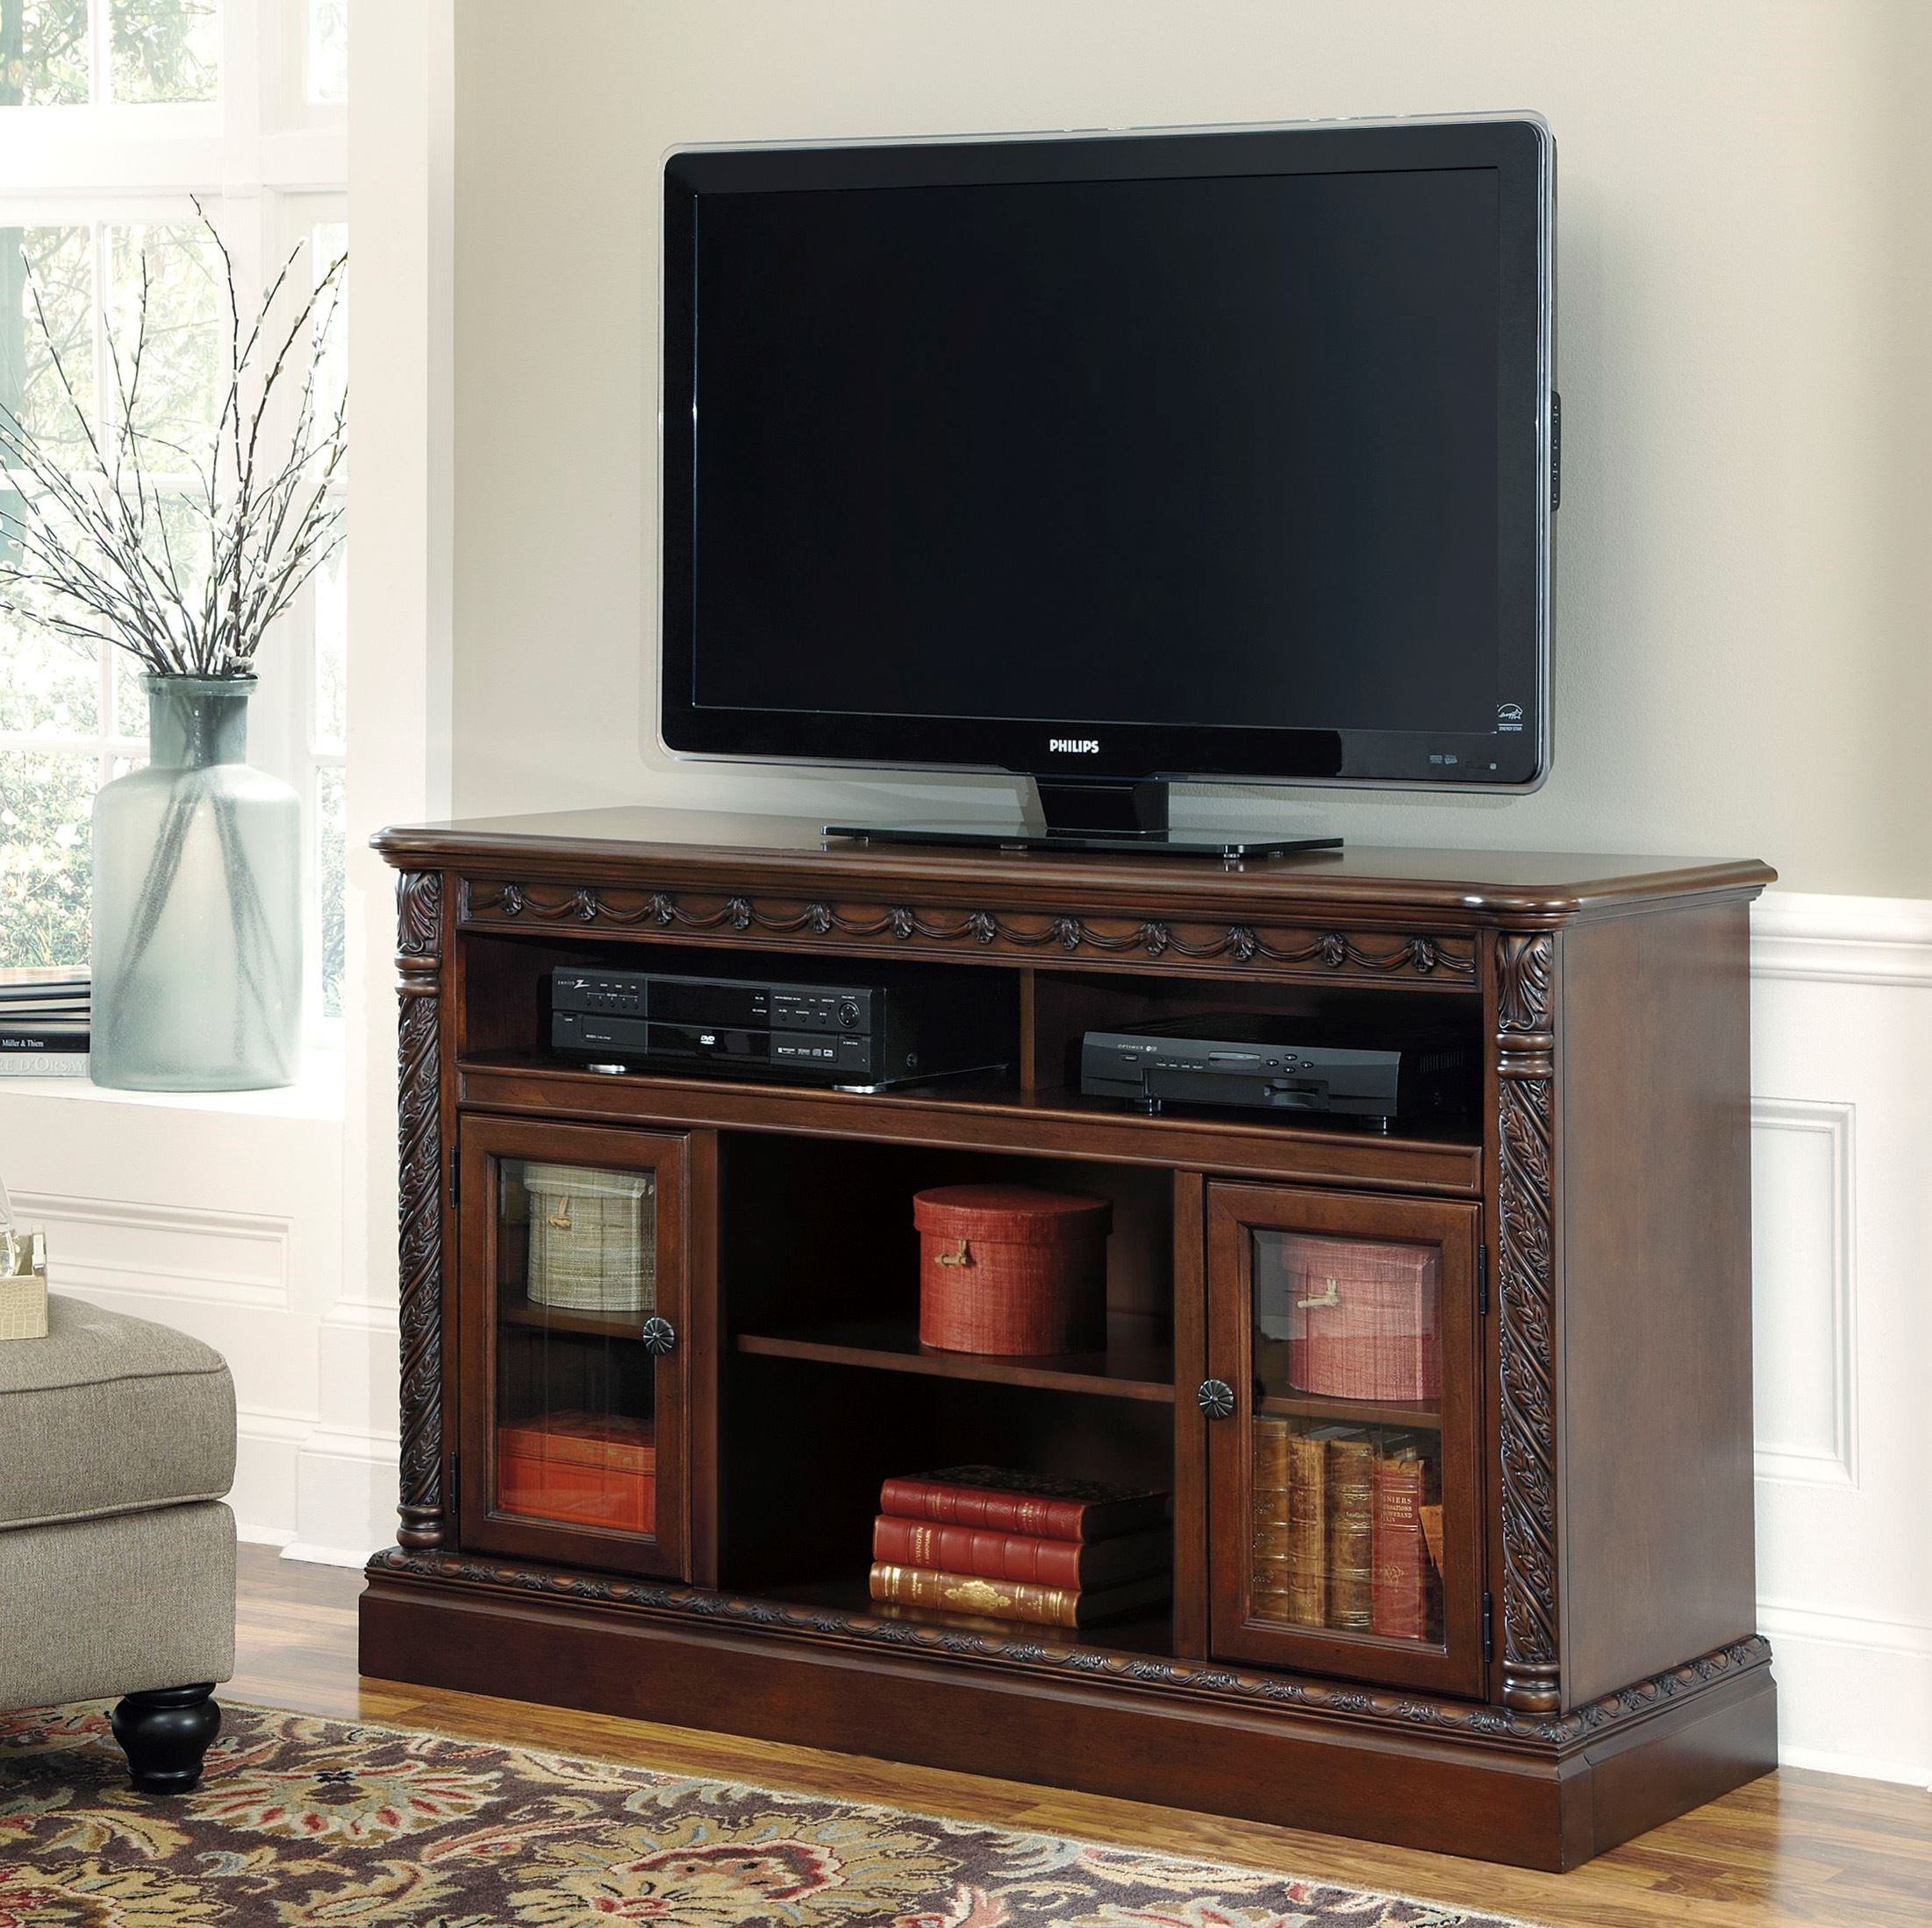 North Shore Lg Tv Stand From Ashley W553 68 Coleman